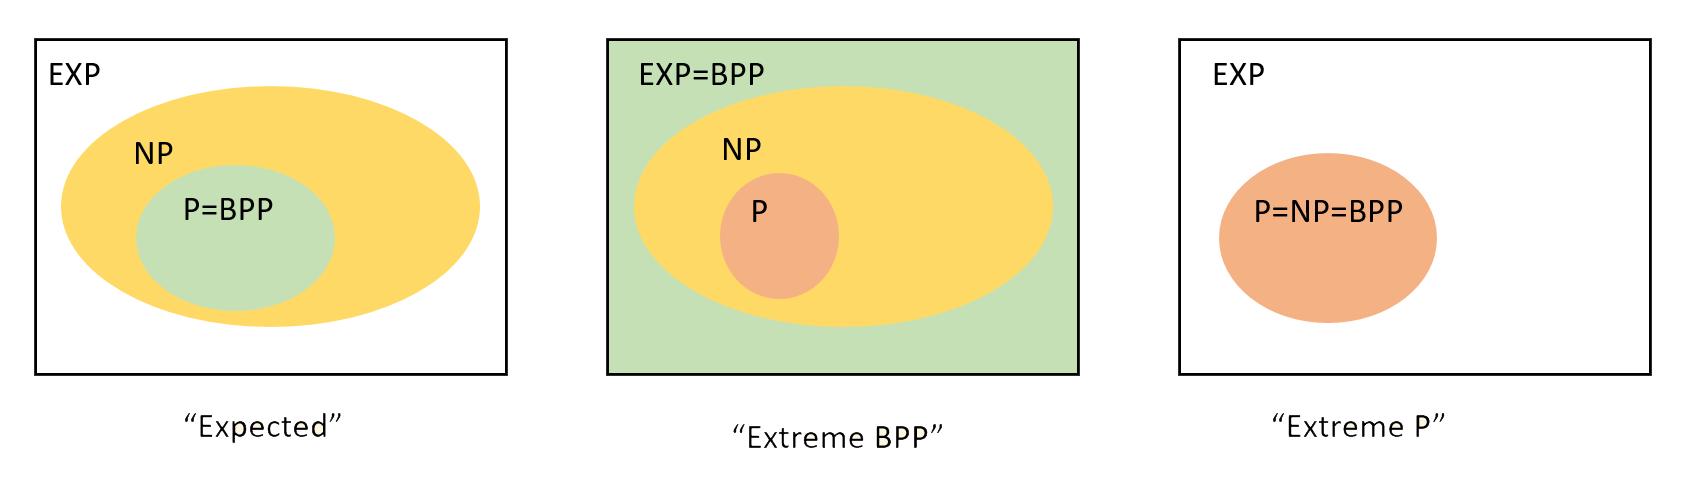 """Some possibilities for the relations between \mathbf{BPP} and other complexity classes. Most researchers believe that \mathbf{BPP}=\mathbf{P} and that these classes are not powerful enough to solve \mathbf{NP}-complete problems, let alone all problems in \mathbf{EXP}. However, we have not even been able yet to rule out the possiblity that randomness is a """"silver bullet"""" that allows exponential speedup on all problems, and hence \mathbf{BPP}=\mathbf{EXP}. As we've already seen, we also can't rule out that \mathbf{P}=\mathbf{NP}. Interestingly, in the latter case, \mathbf{P}=\mathbf{BPP}."""